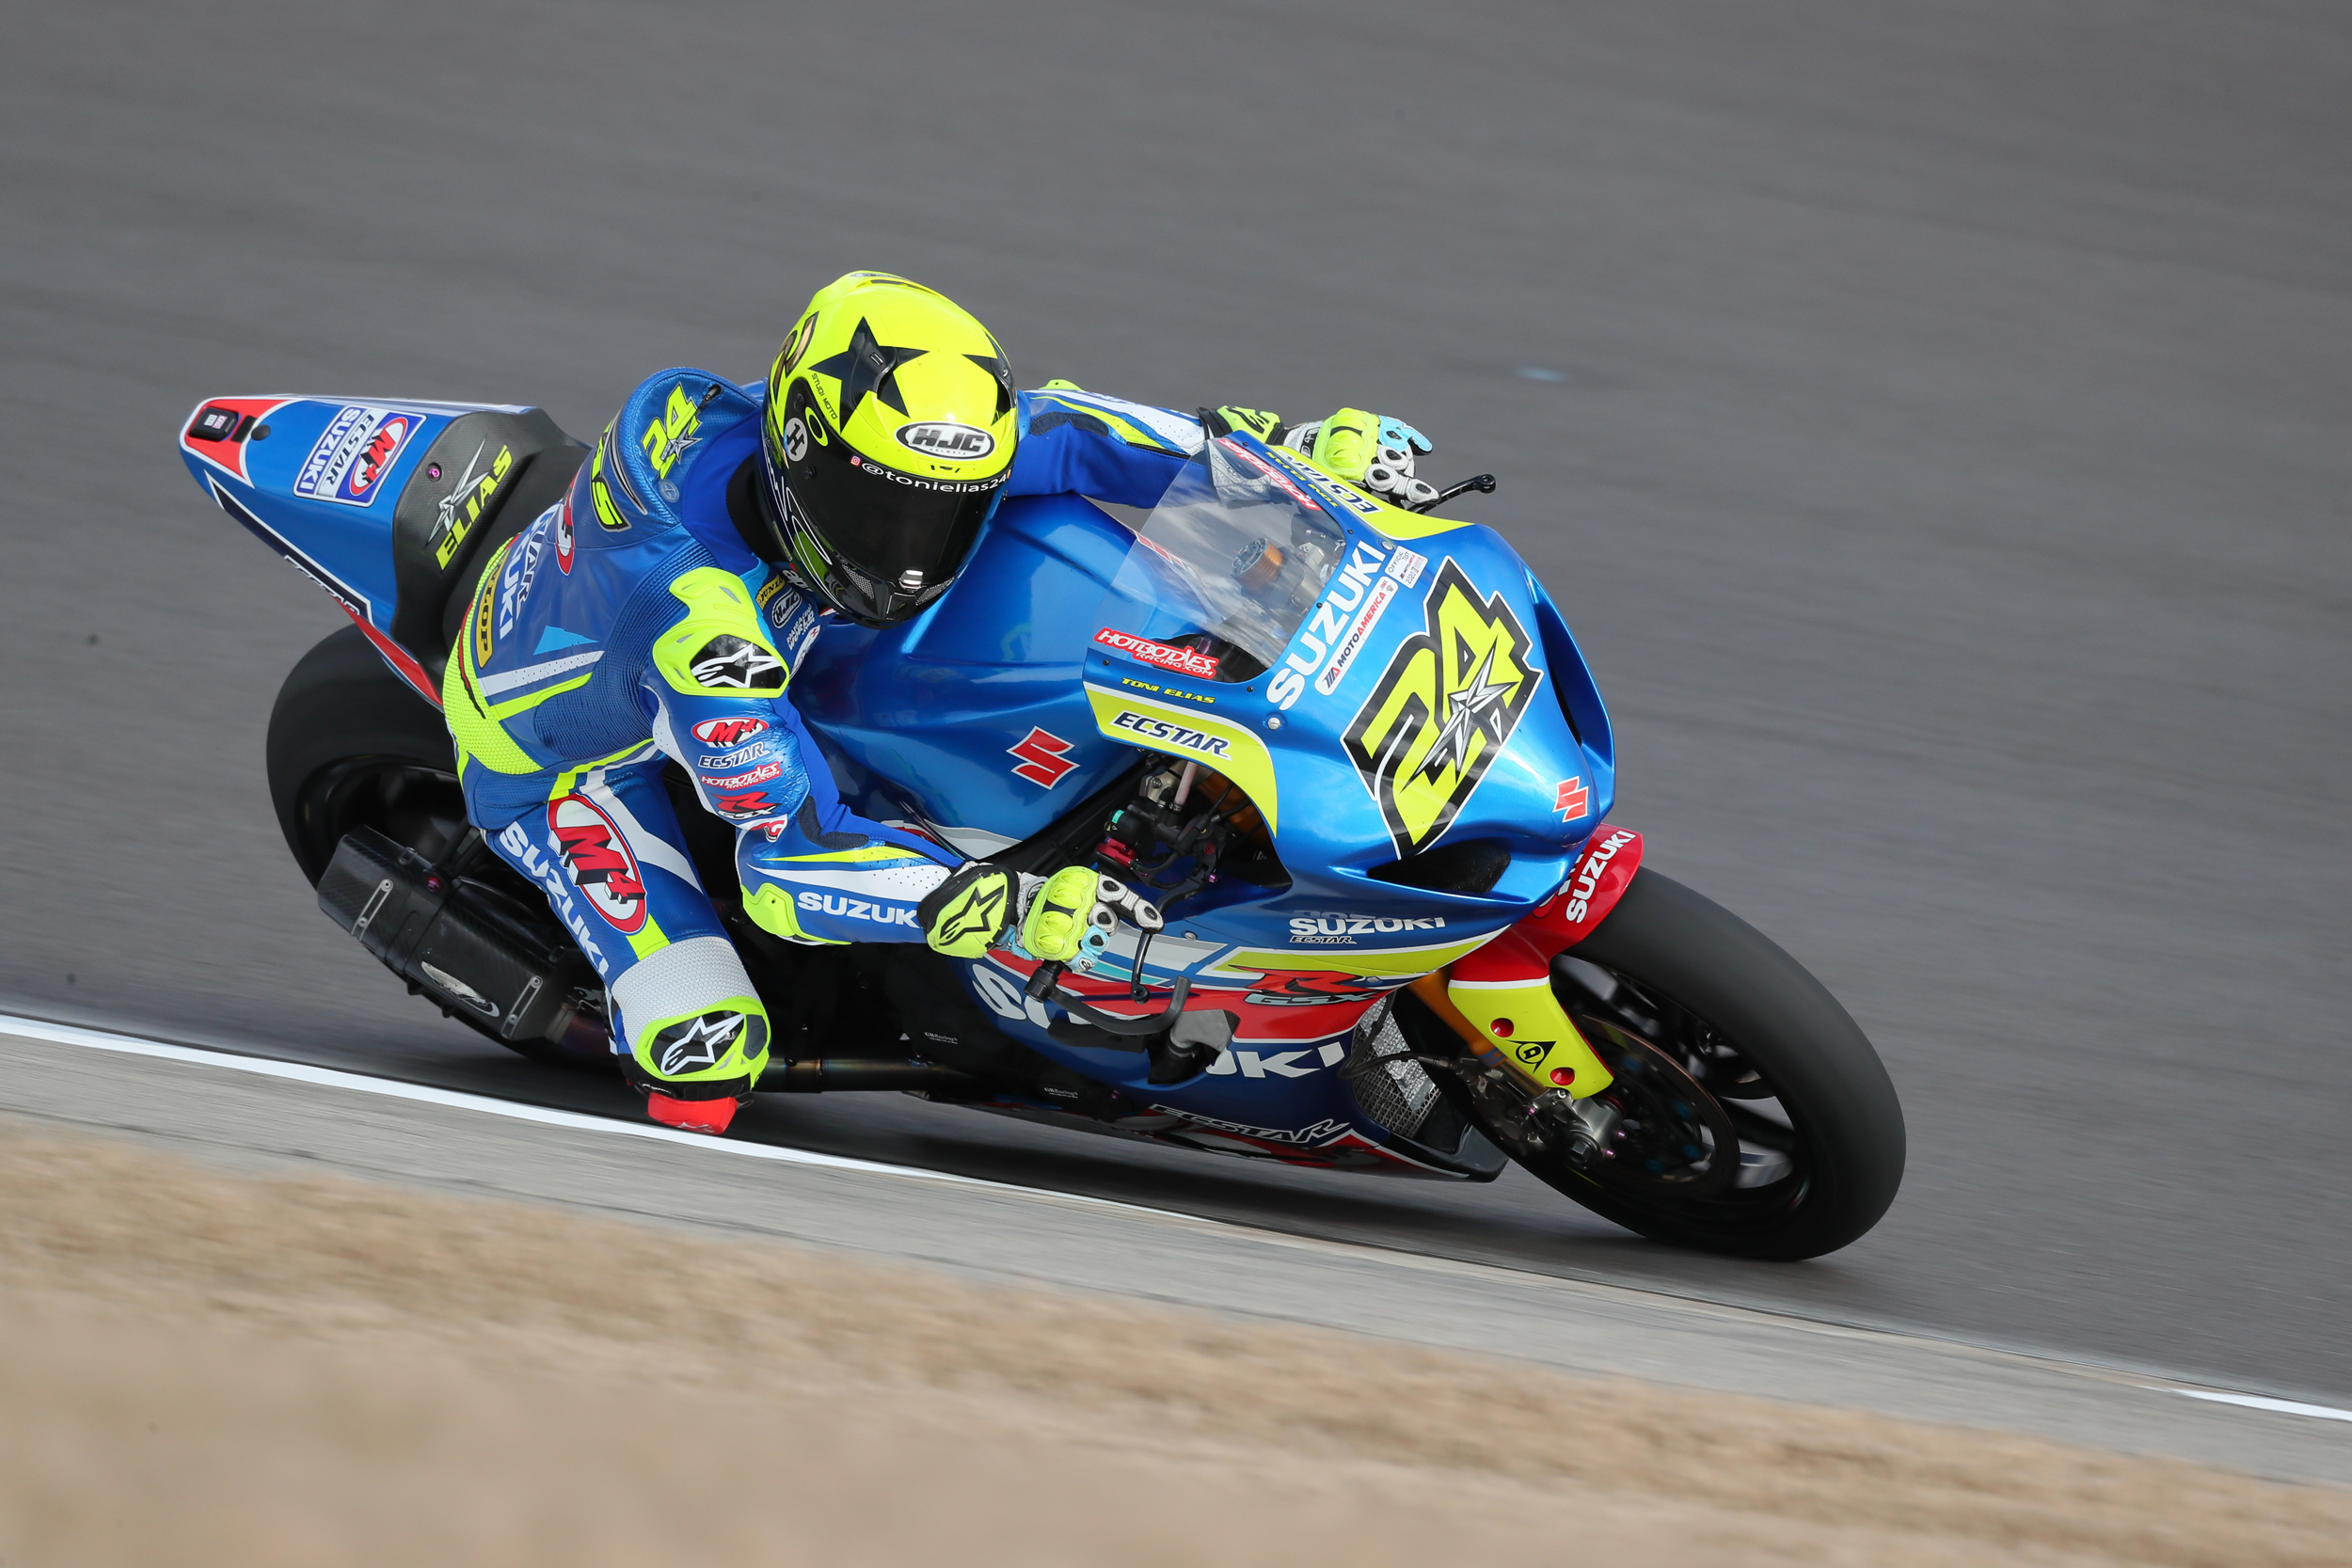 200311 M4 ECSTAR Suzuki's Toni Elias led day one of the MotoAmerica Dunlop Preseason test at the Barber Motorsports Park on Tuesday. Photo by Brian J. Nelson